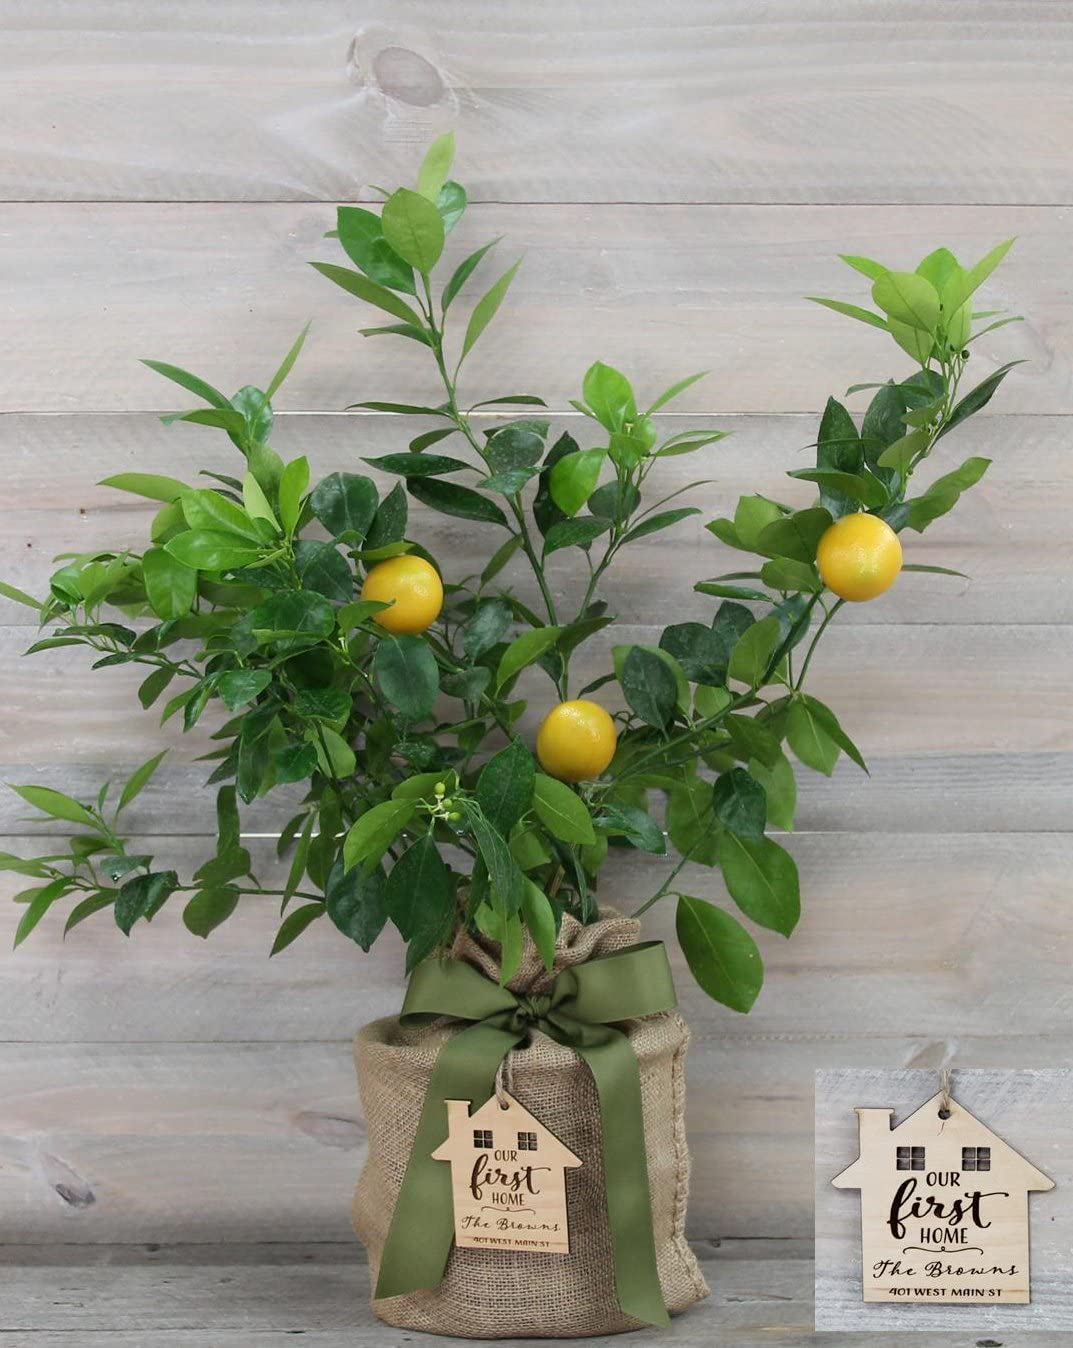 Improved Meyer Lemon Housewarming Gift Tree with Personalized Keepsake Ornament by The Magnolia Company